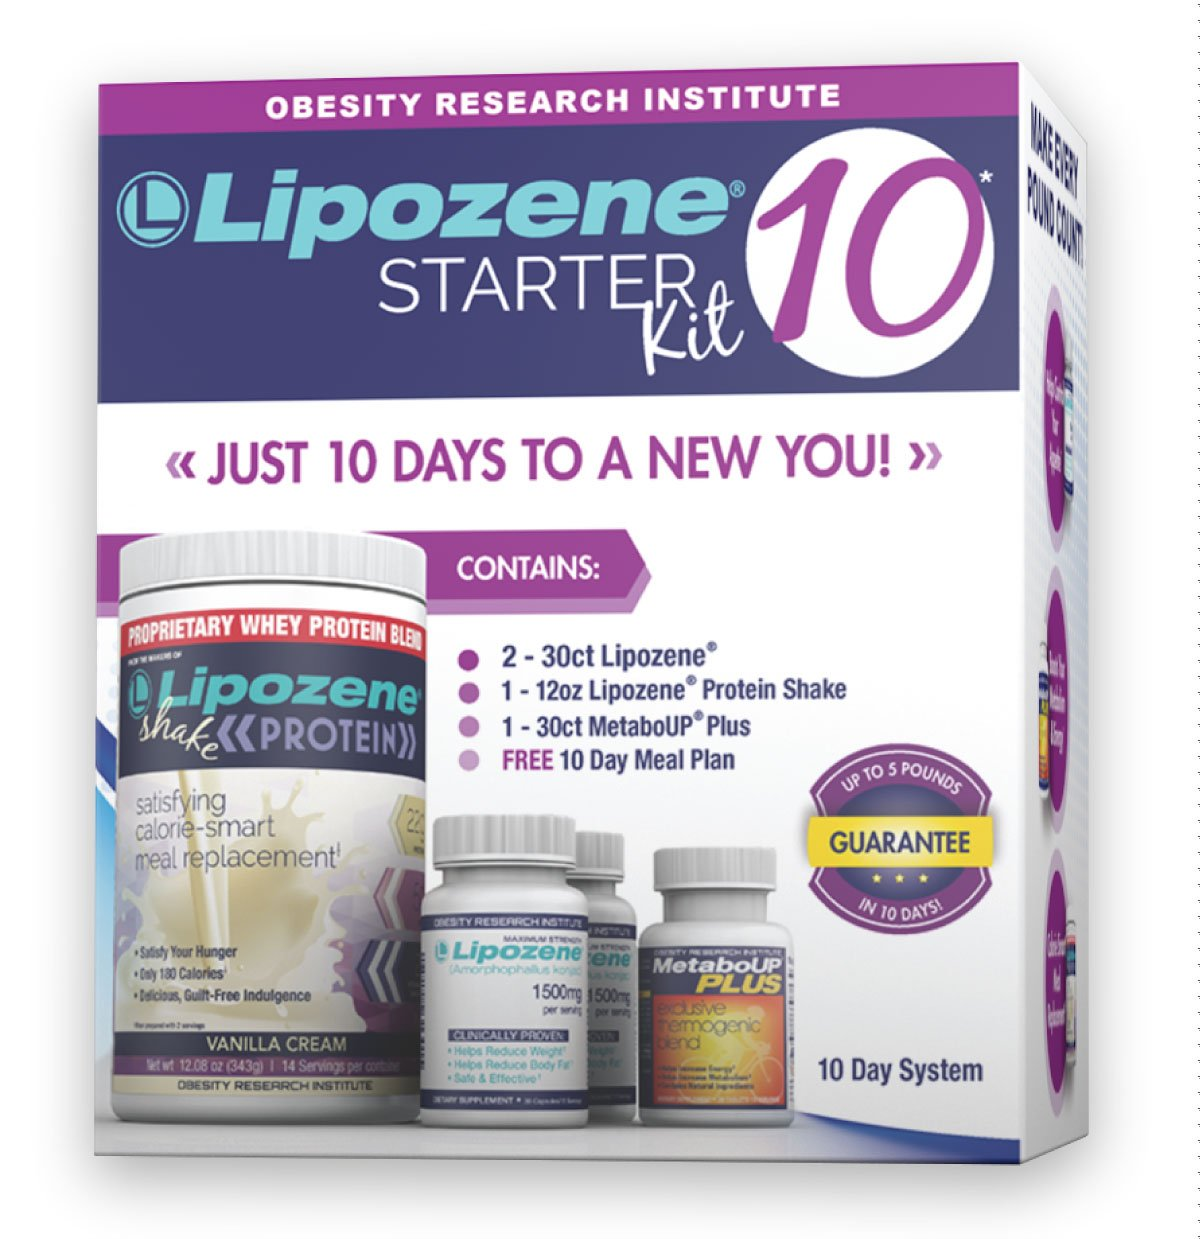 Lipozene 10 Starter Kit - Complete Diet and Nutrition Plan Including Protein Shake, Lipozene Appetite Suppressants, Meal Plan, and MetaboUP Thermogenic Metabolic Booster